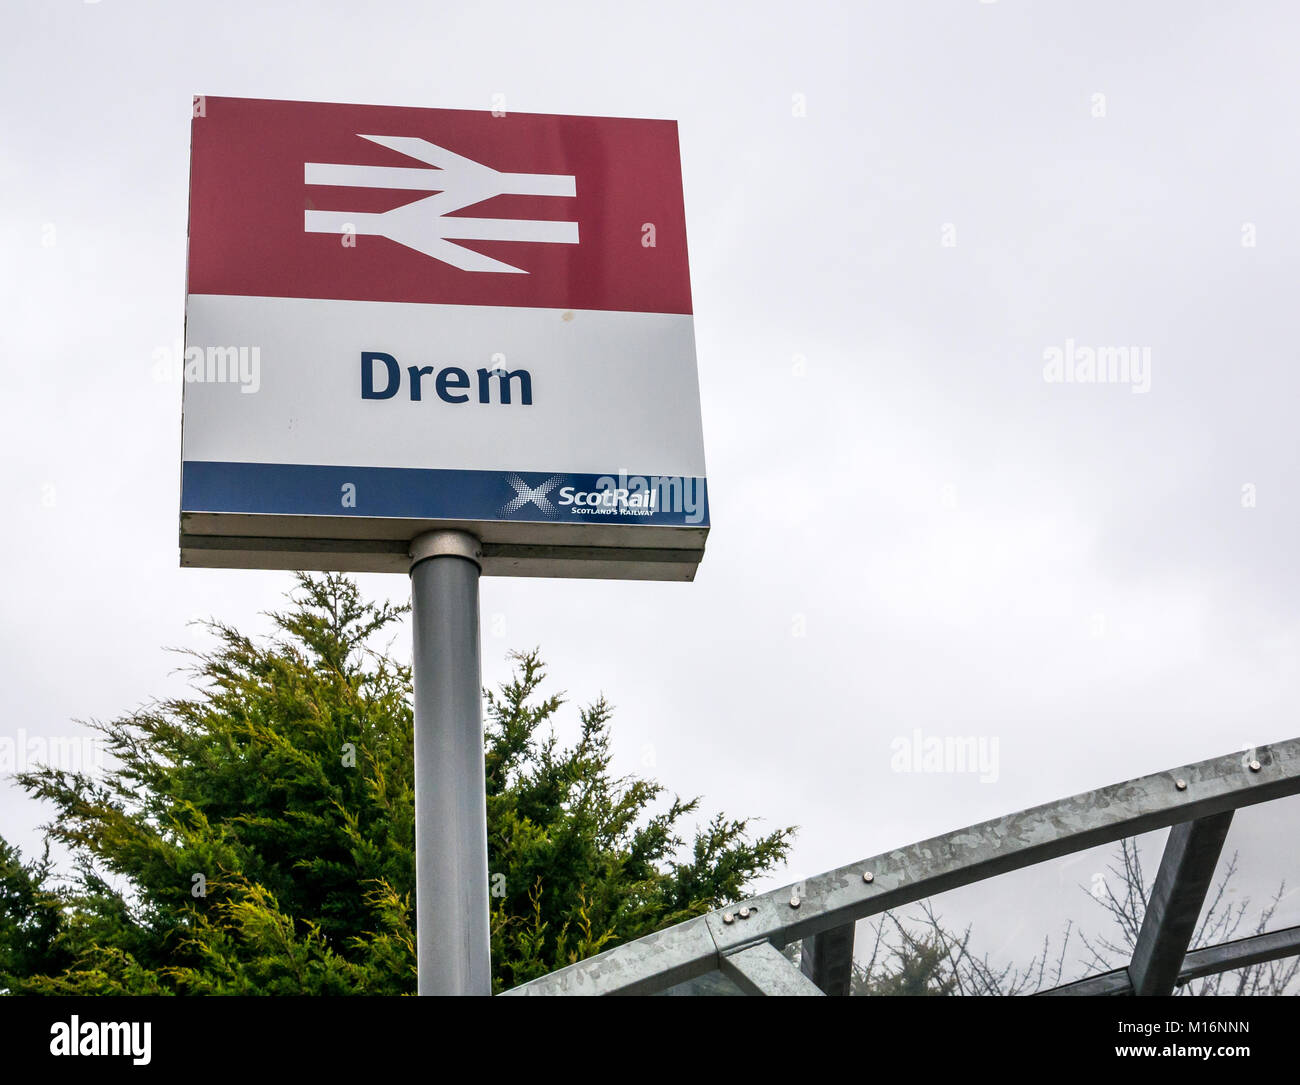 Close up of Drem train station ScotRail sign, with network logo, Drem, East Lothian, Scotland, United Kingdom - Stock Image